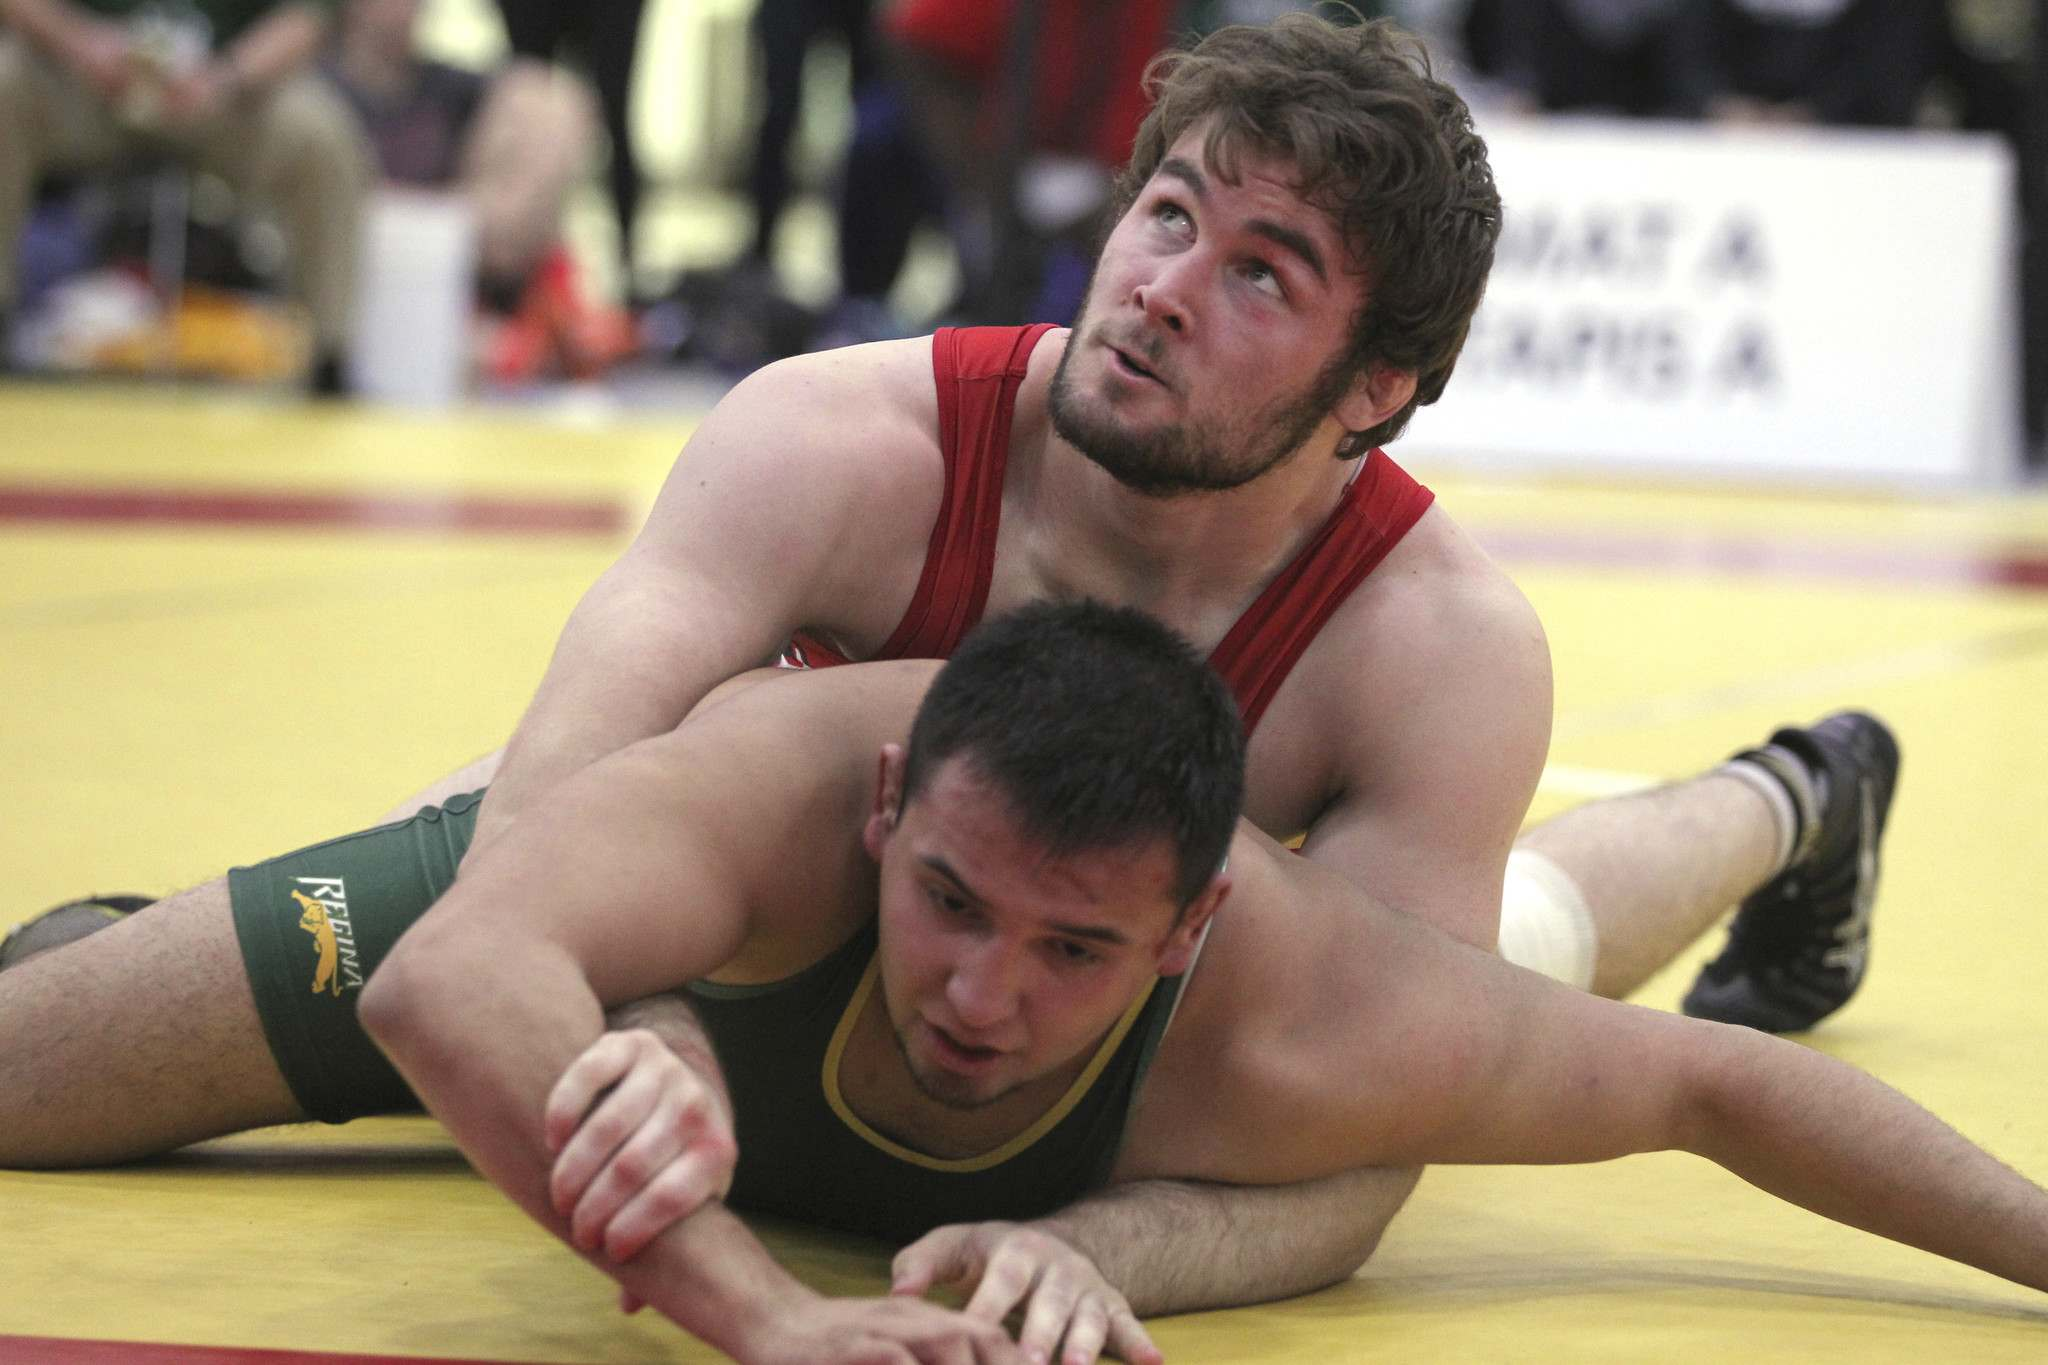 <p>Finn Higgins with University of Winnipeg Wesmen (in red) competes against Waylon Decoteau of the Regina Cougars in the men&#39;s 100-kilogram weight class at the U Sports national wrestling championships at Axworthy RecPlex Saturday. Higgins won the match to capture a gold medal at the event.</p>